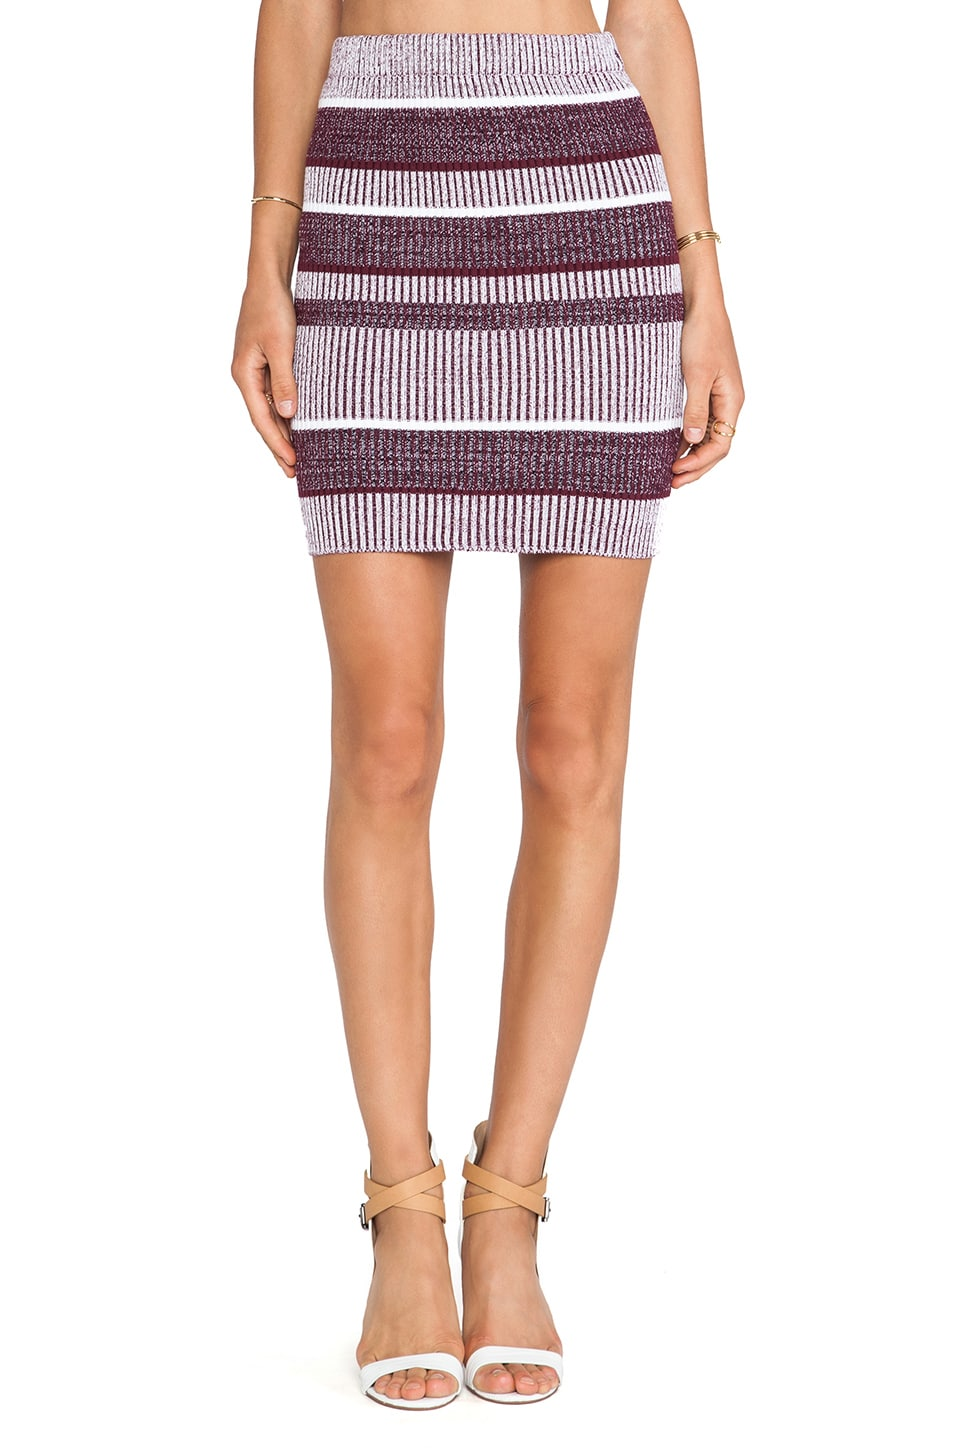 T by Alexander Wang Rib Knit Pencil Skirt in Bordeaux